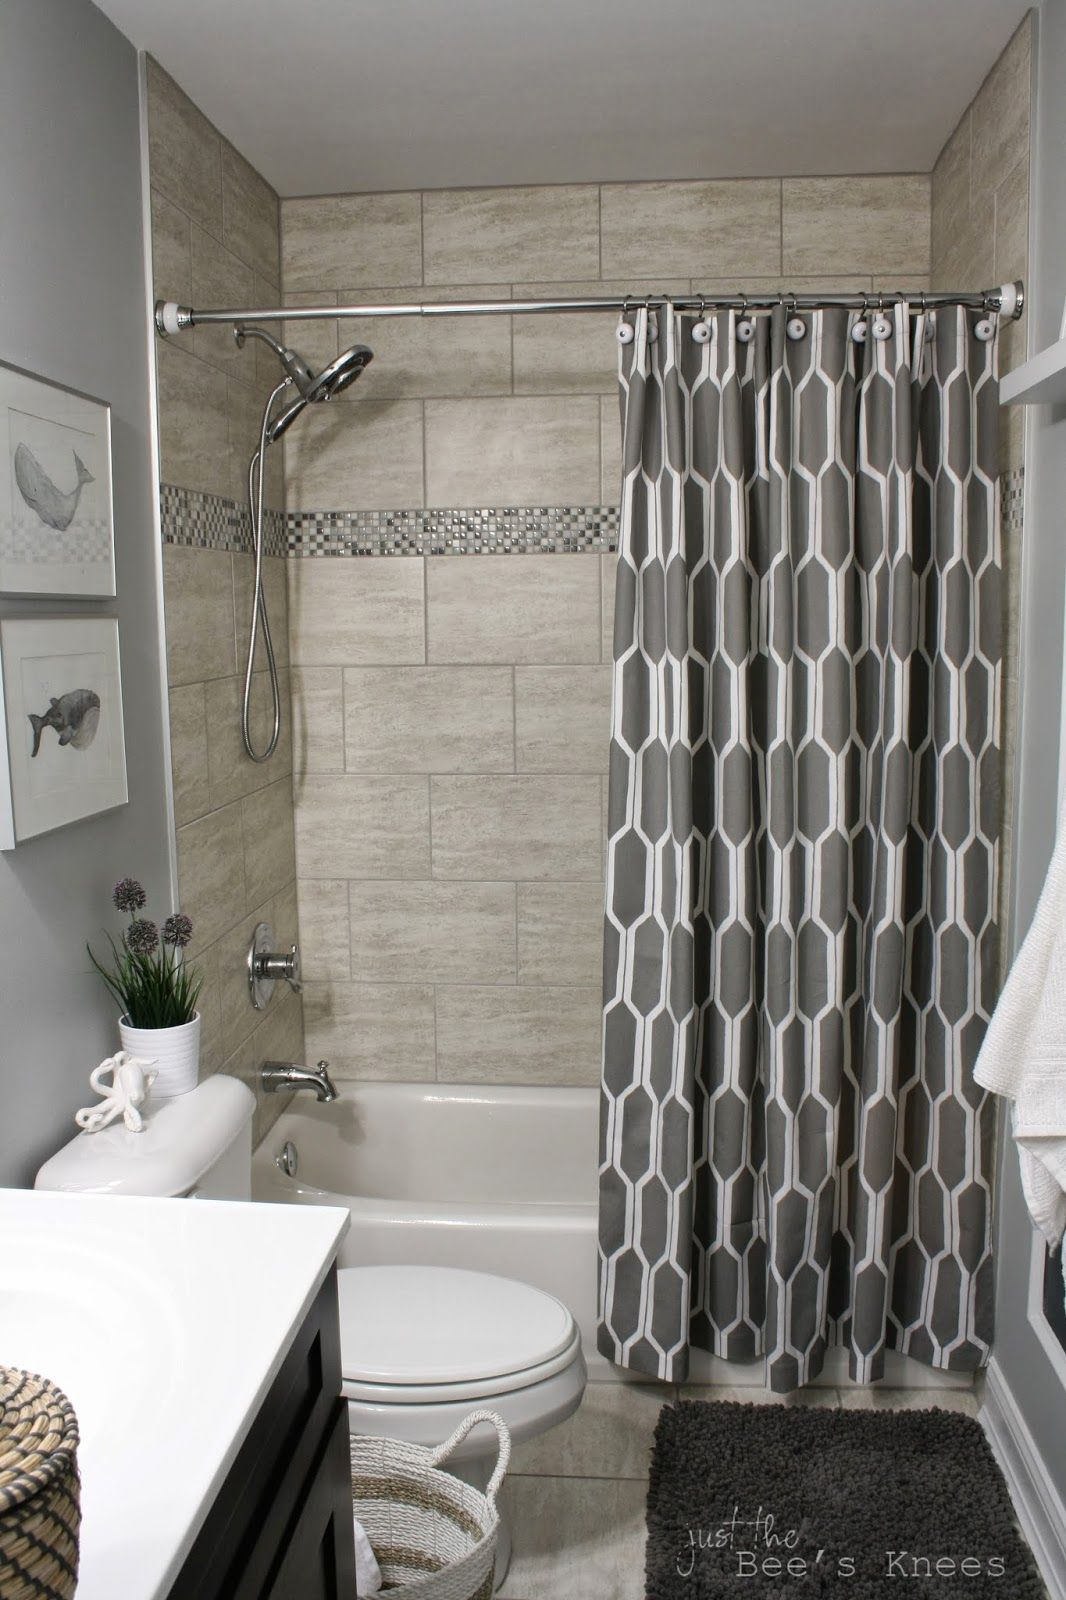 tile ideakids bathroom honeycomb shower curtain from west elm